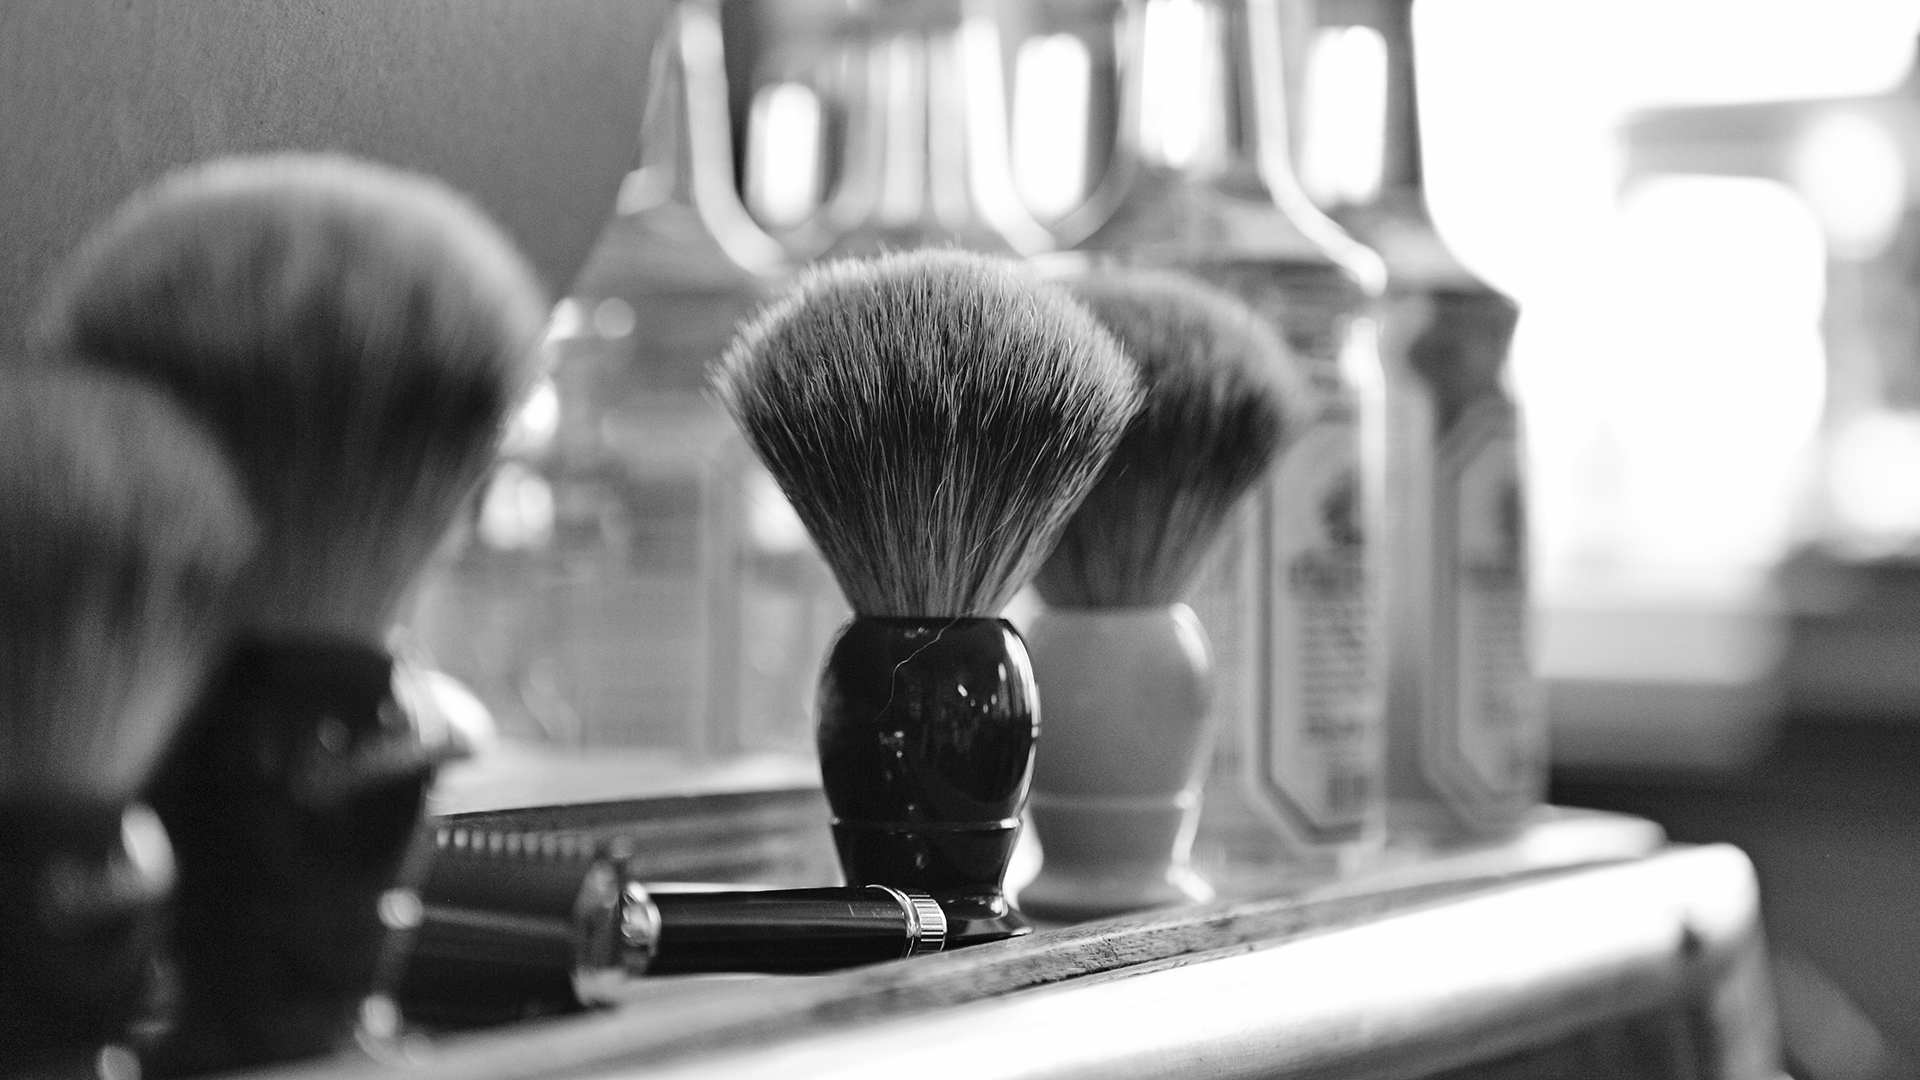 barber-brushes-gs-1080